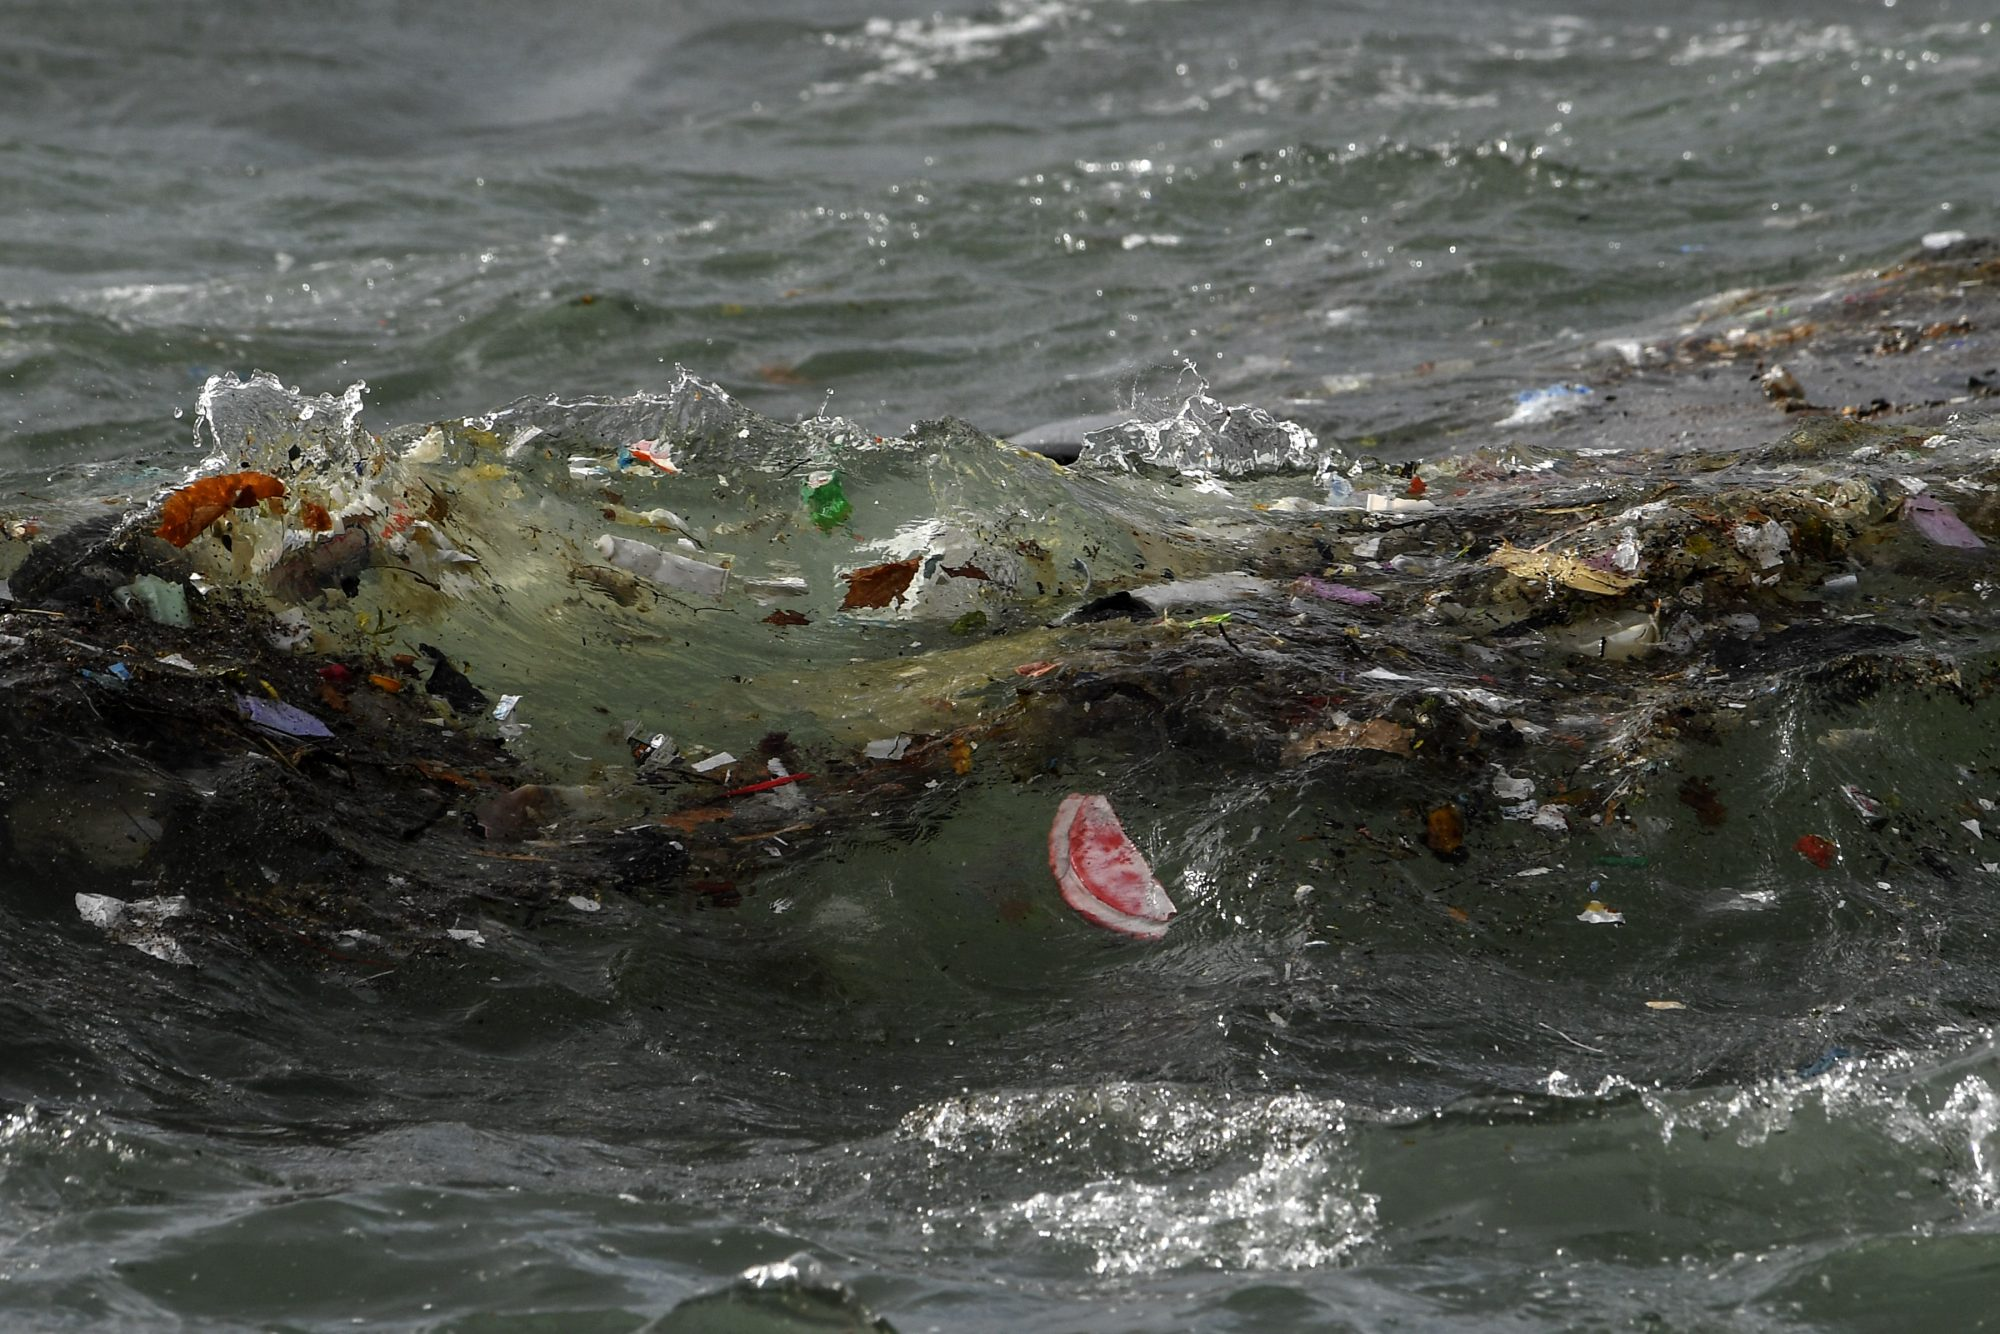 Plastic waste and debris carried by the storm of the last